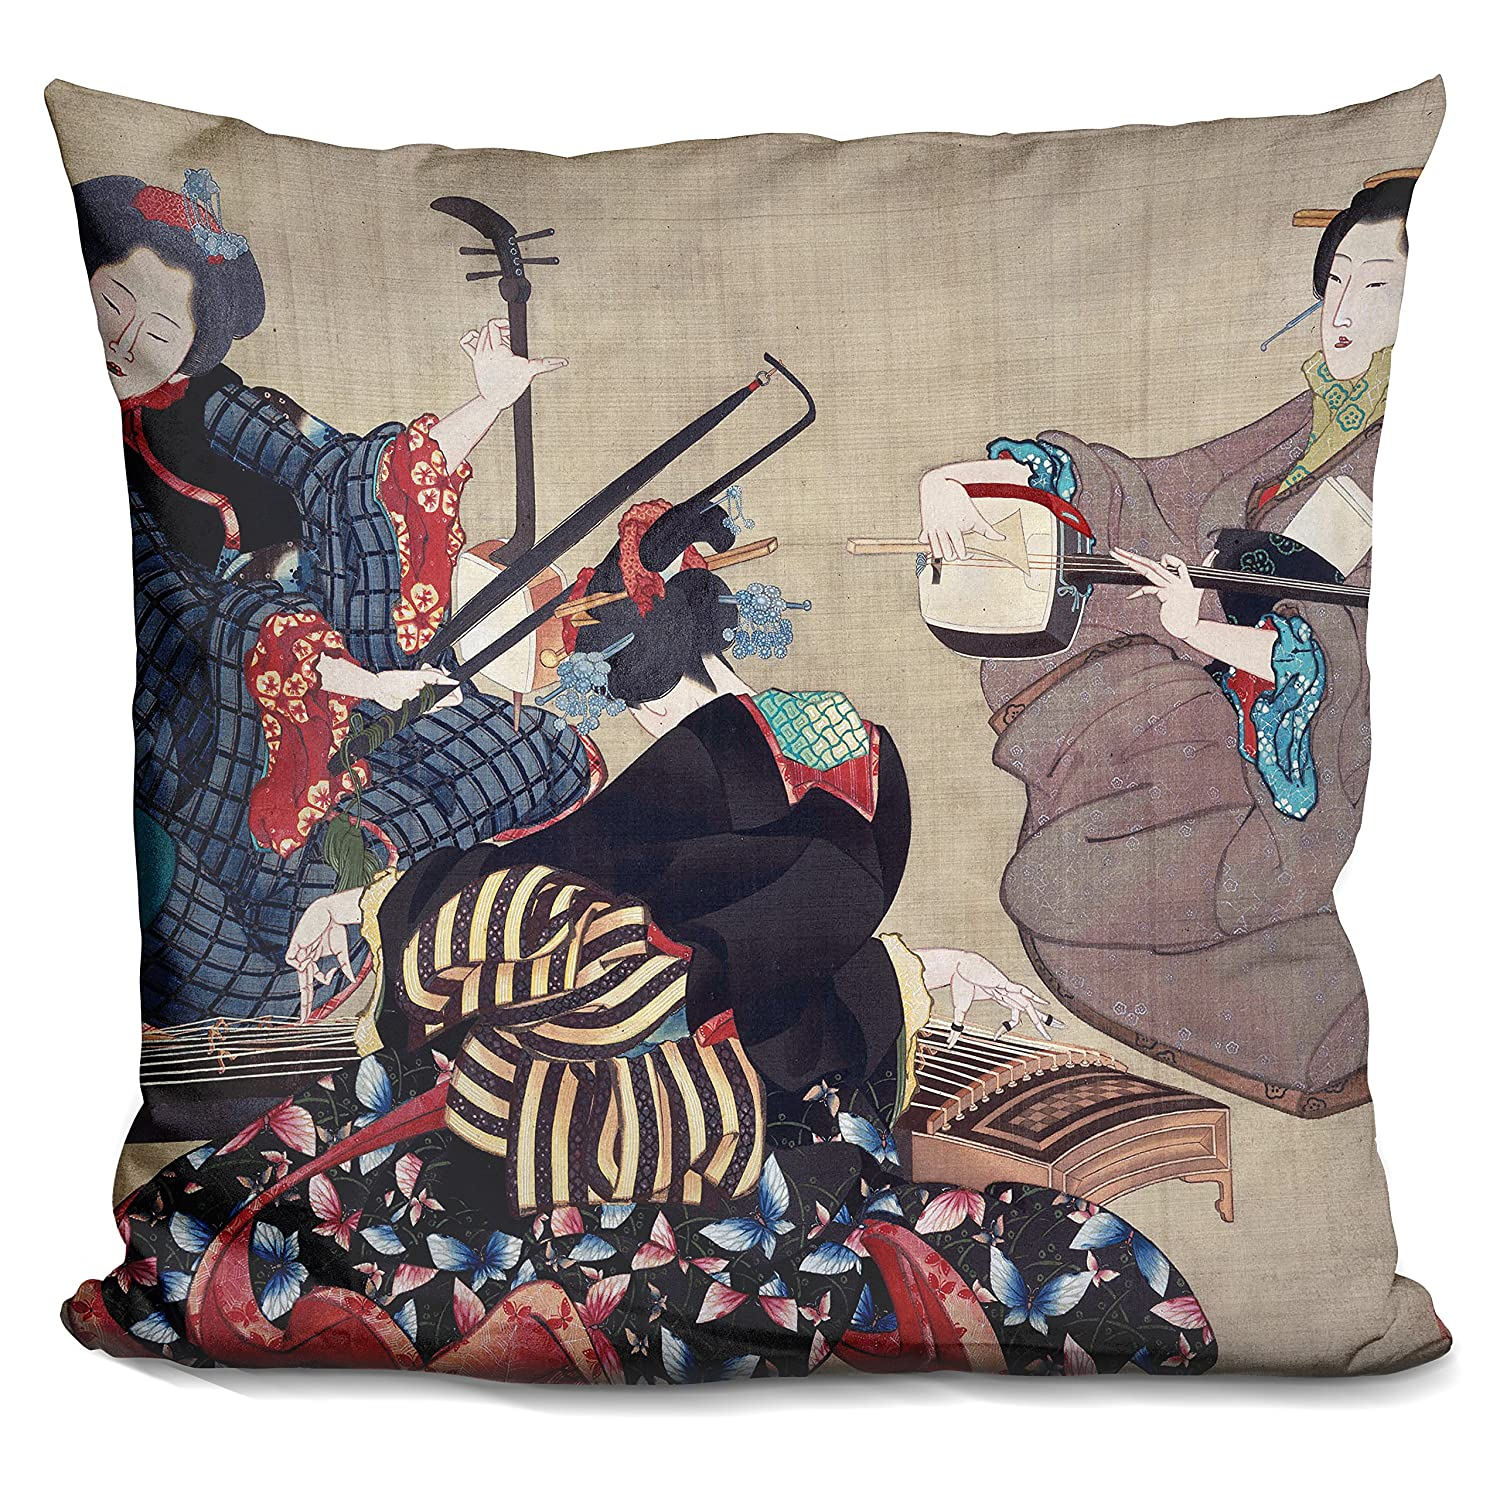 LiLiPiThree Women Playing Musical Decorative Accent Throw Pillow